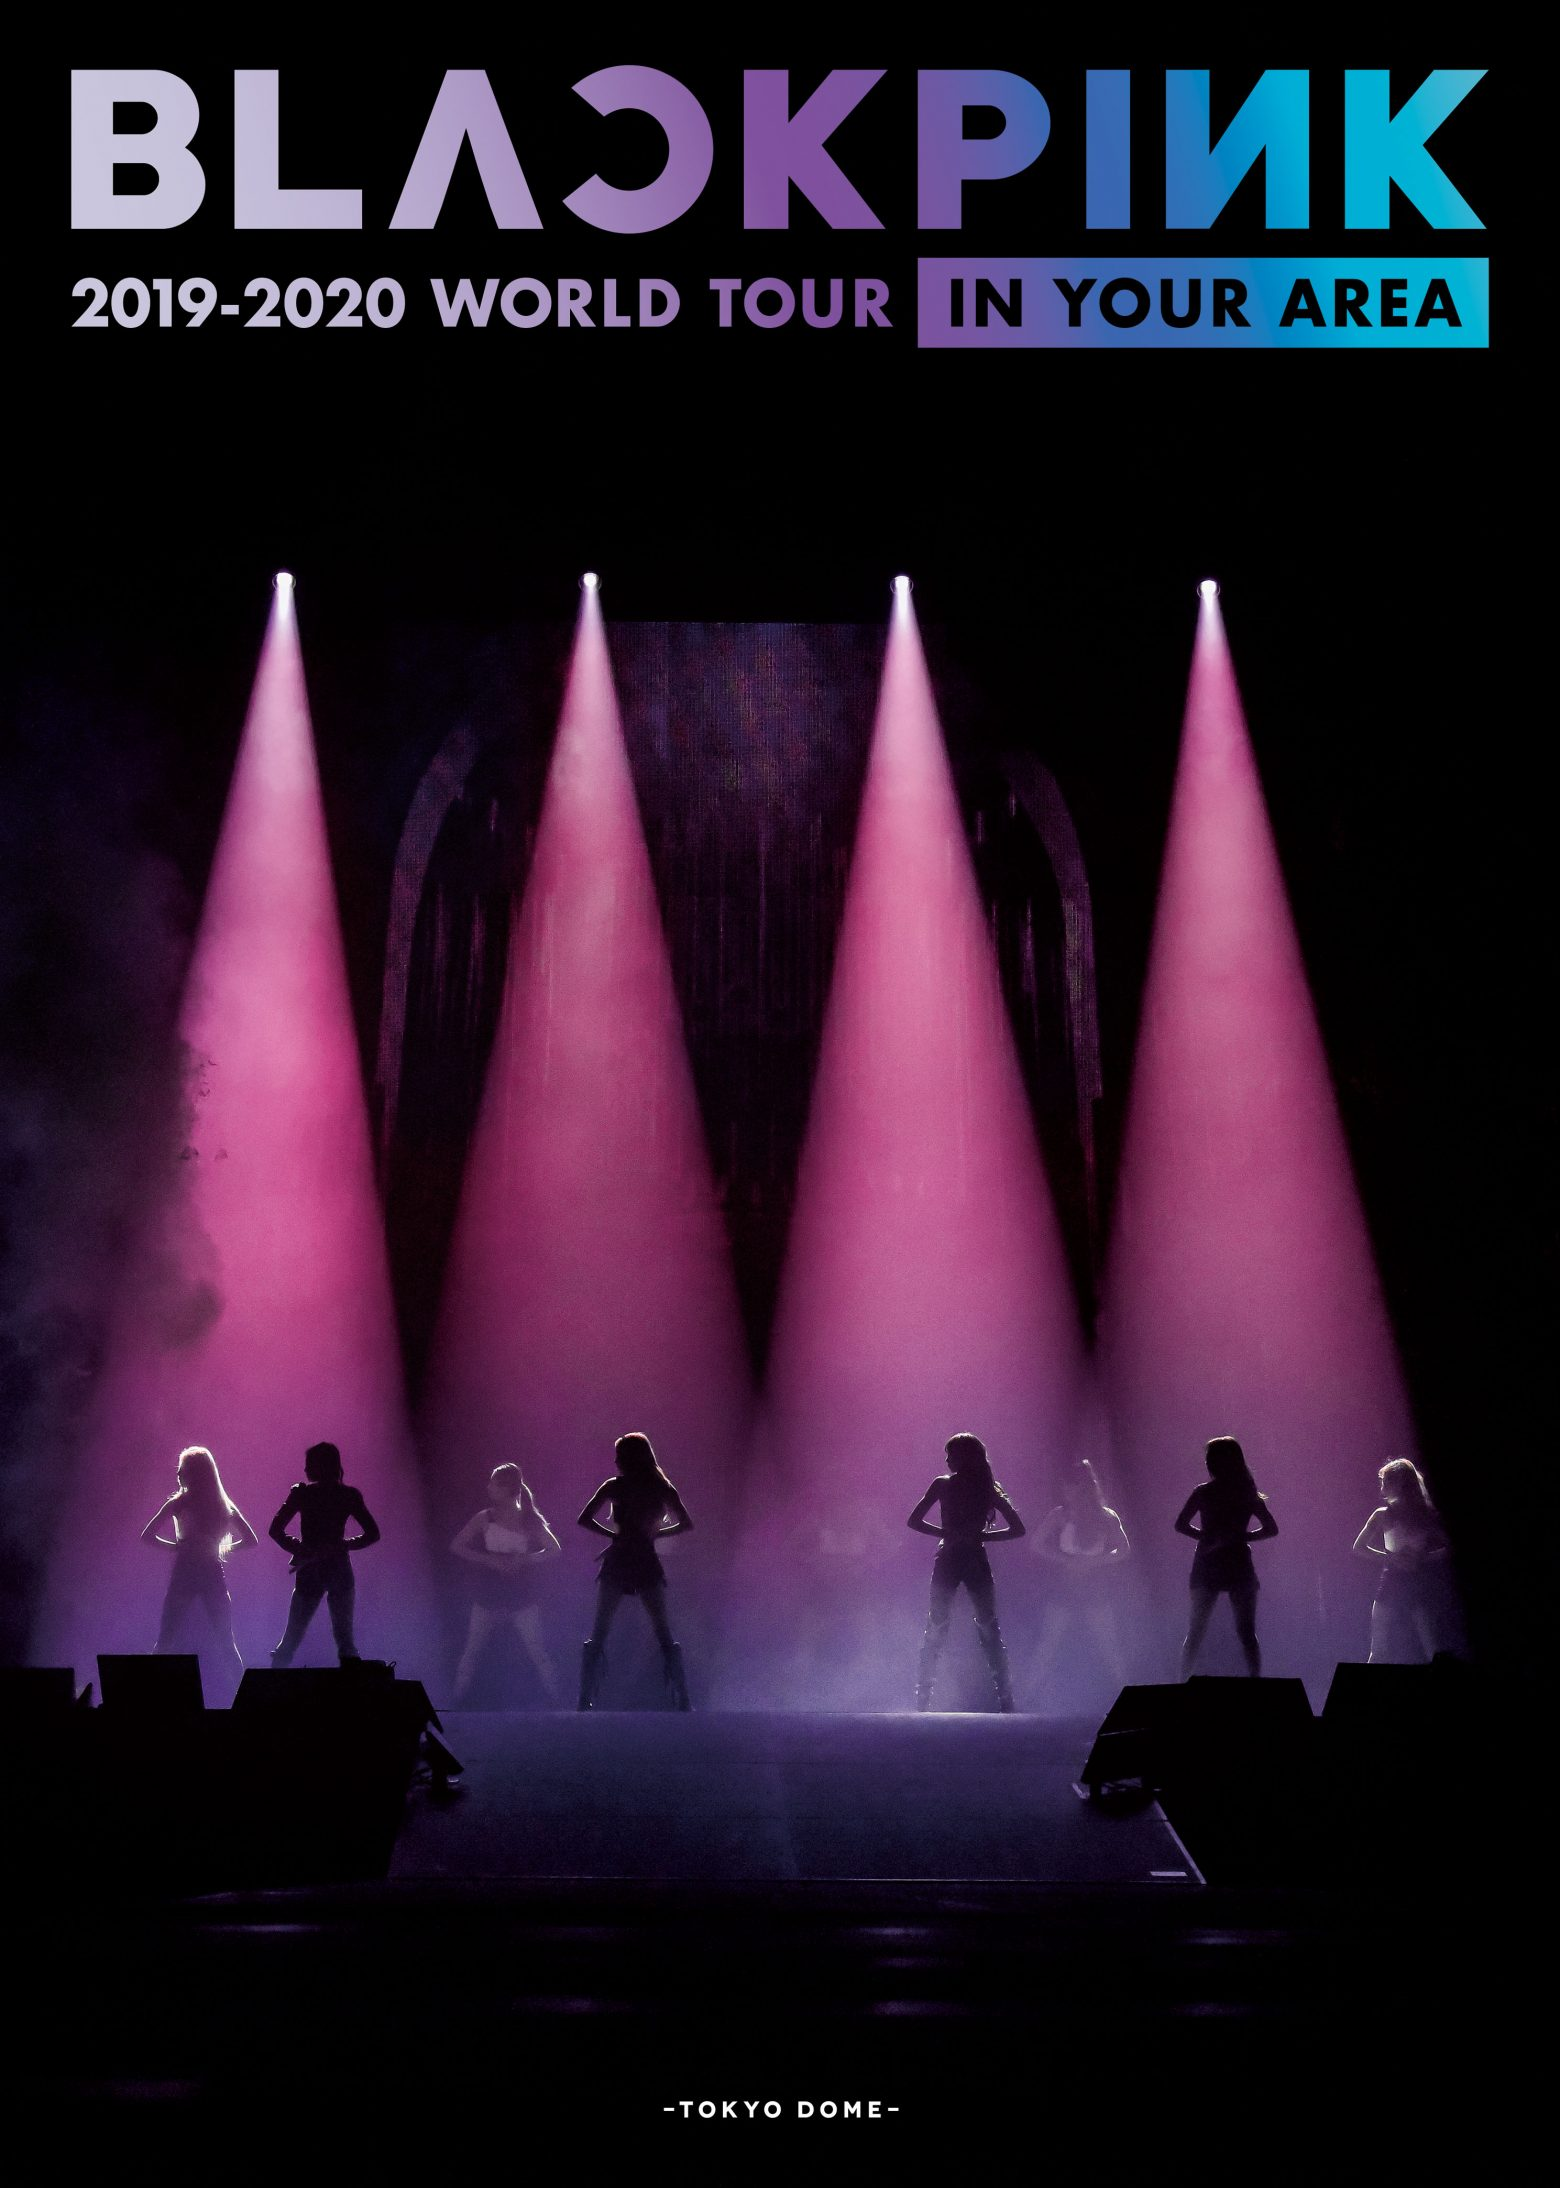 「BLACKPINK 2019-2020 WORLD TOUR IN YOUR AREA」初回BD